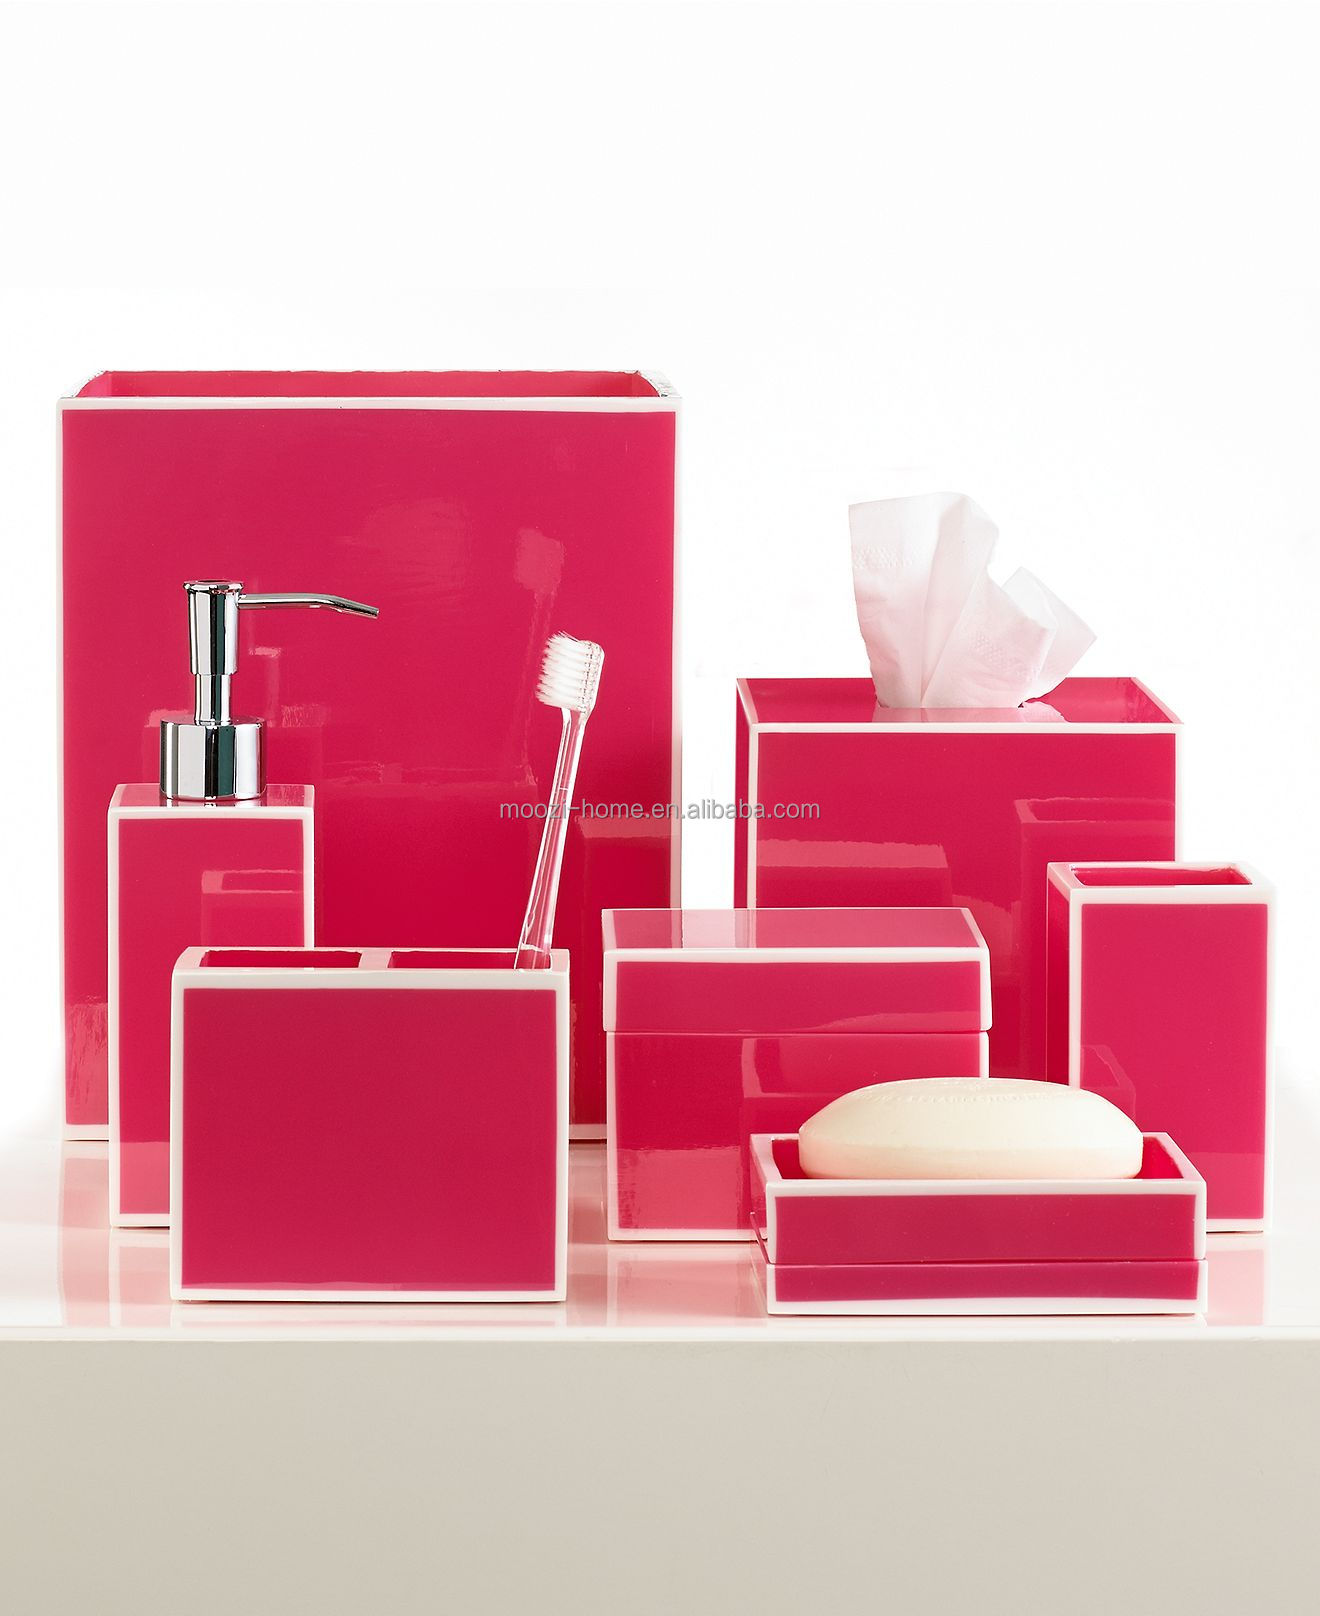 pink bathroom accessories set, pink bathroom accessories set